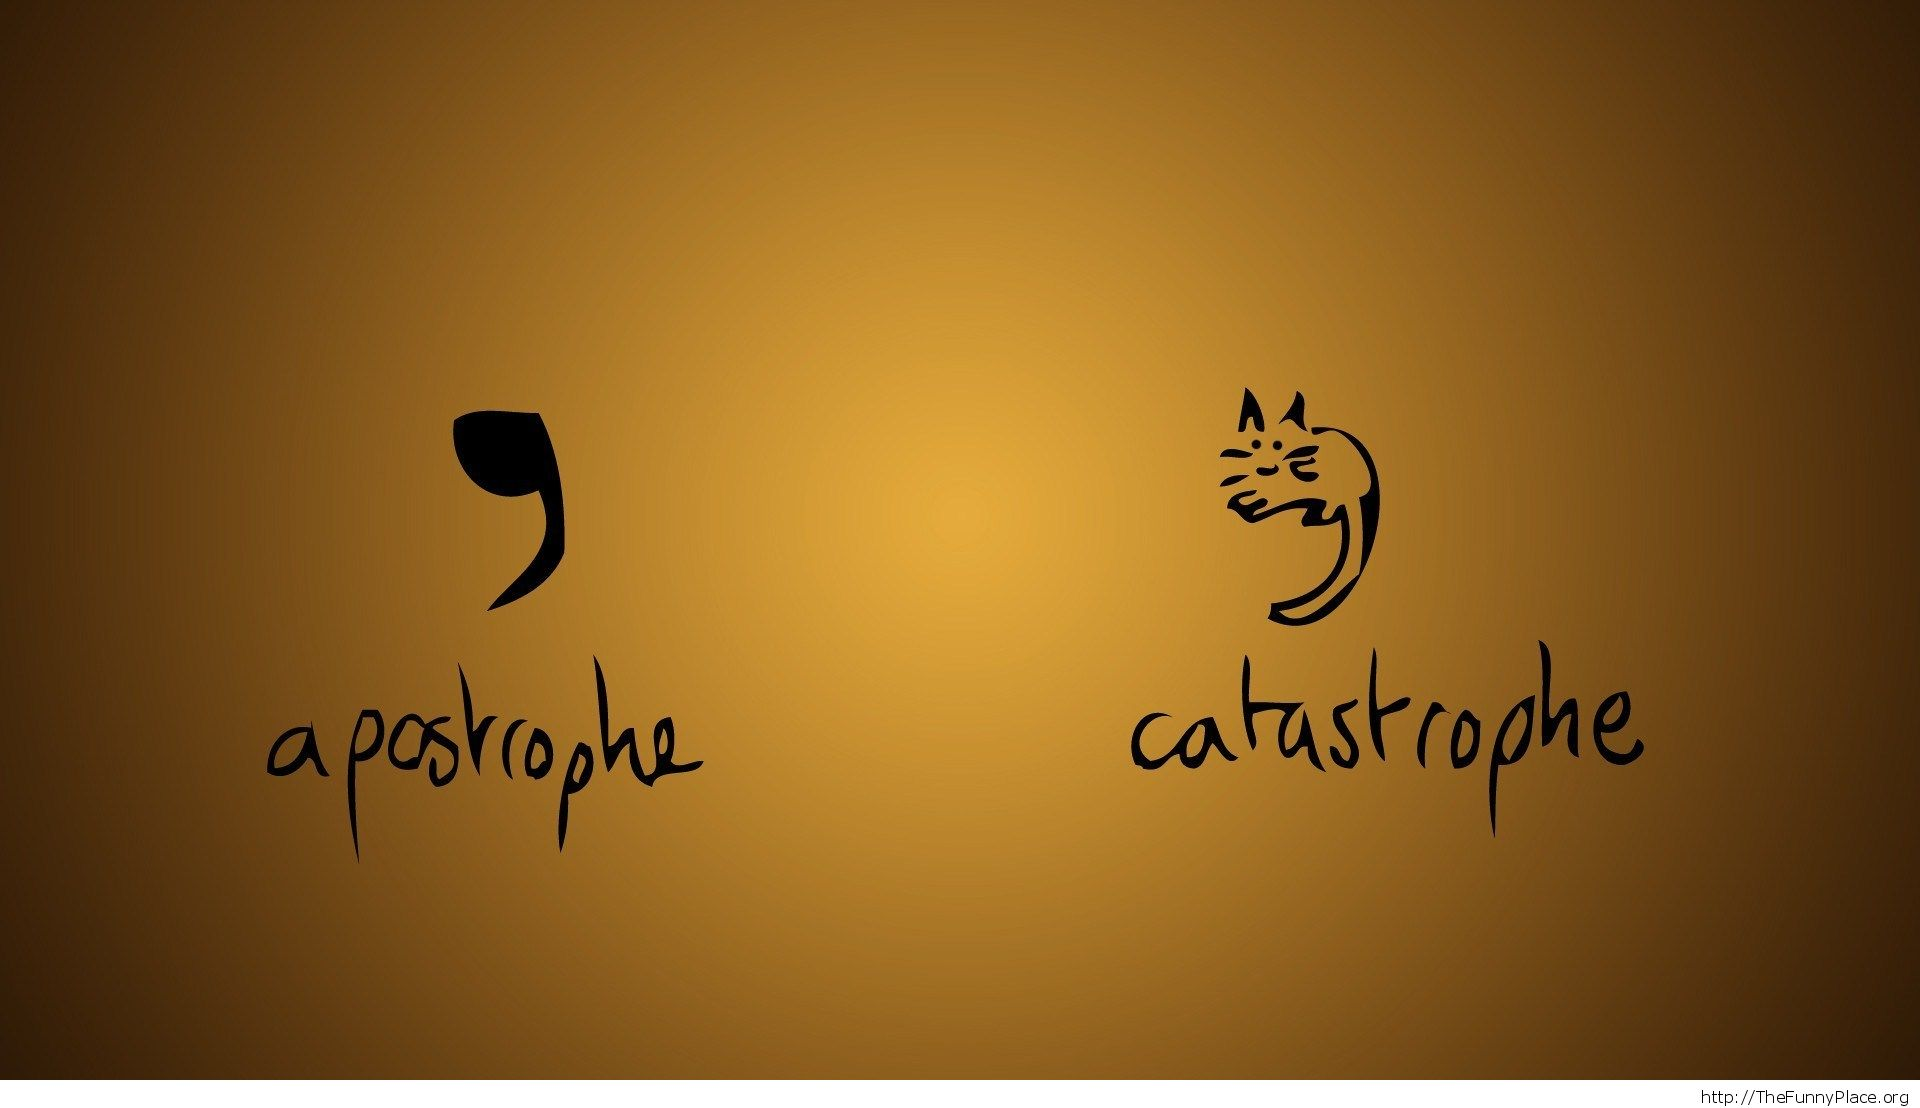 Apostrophe or catastrophe funny wallpaper